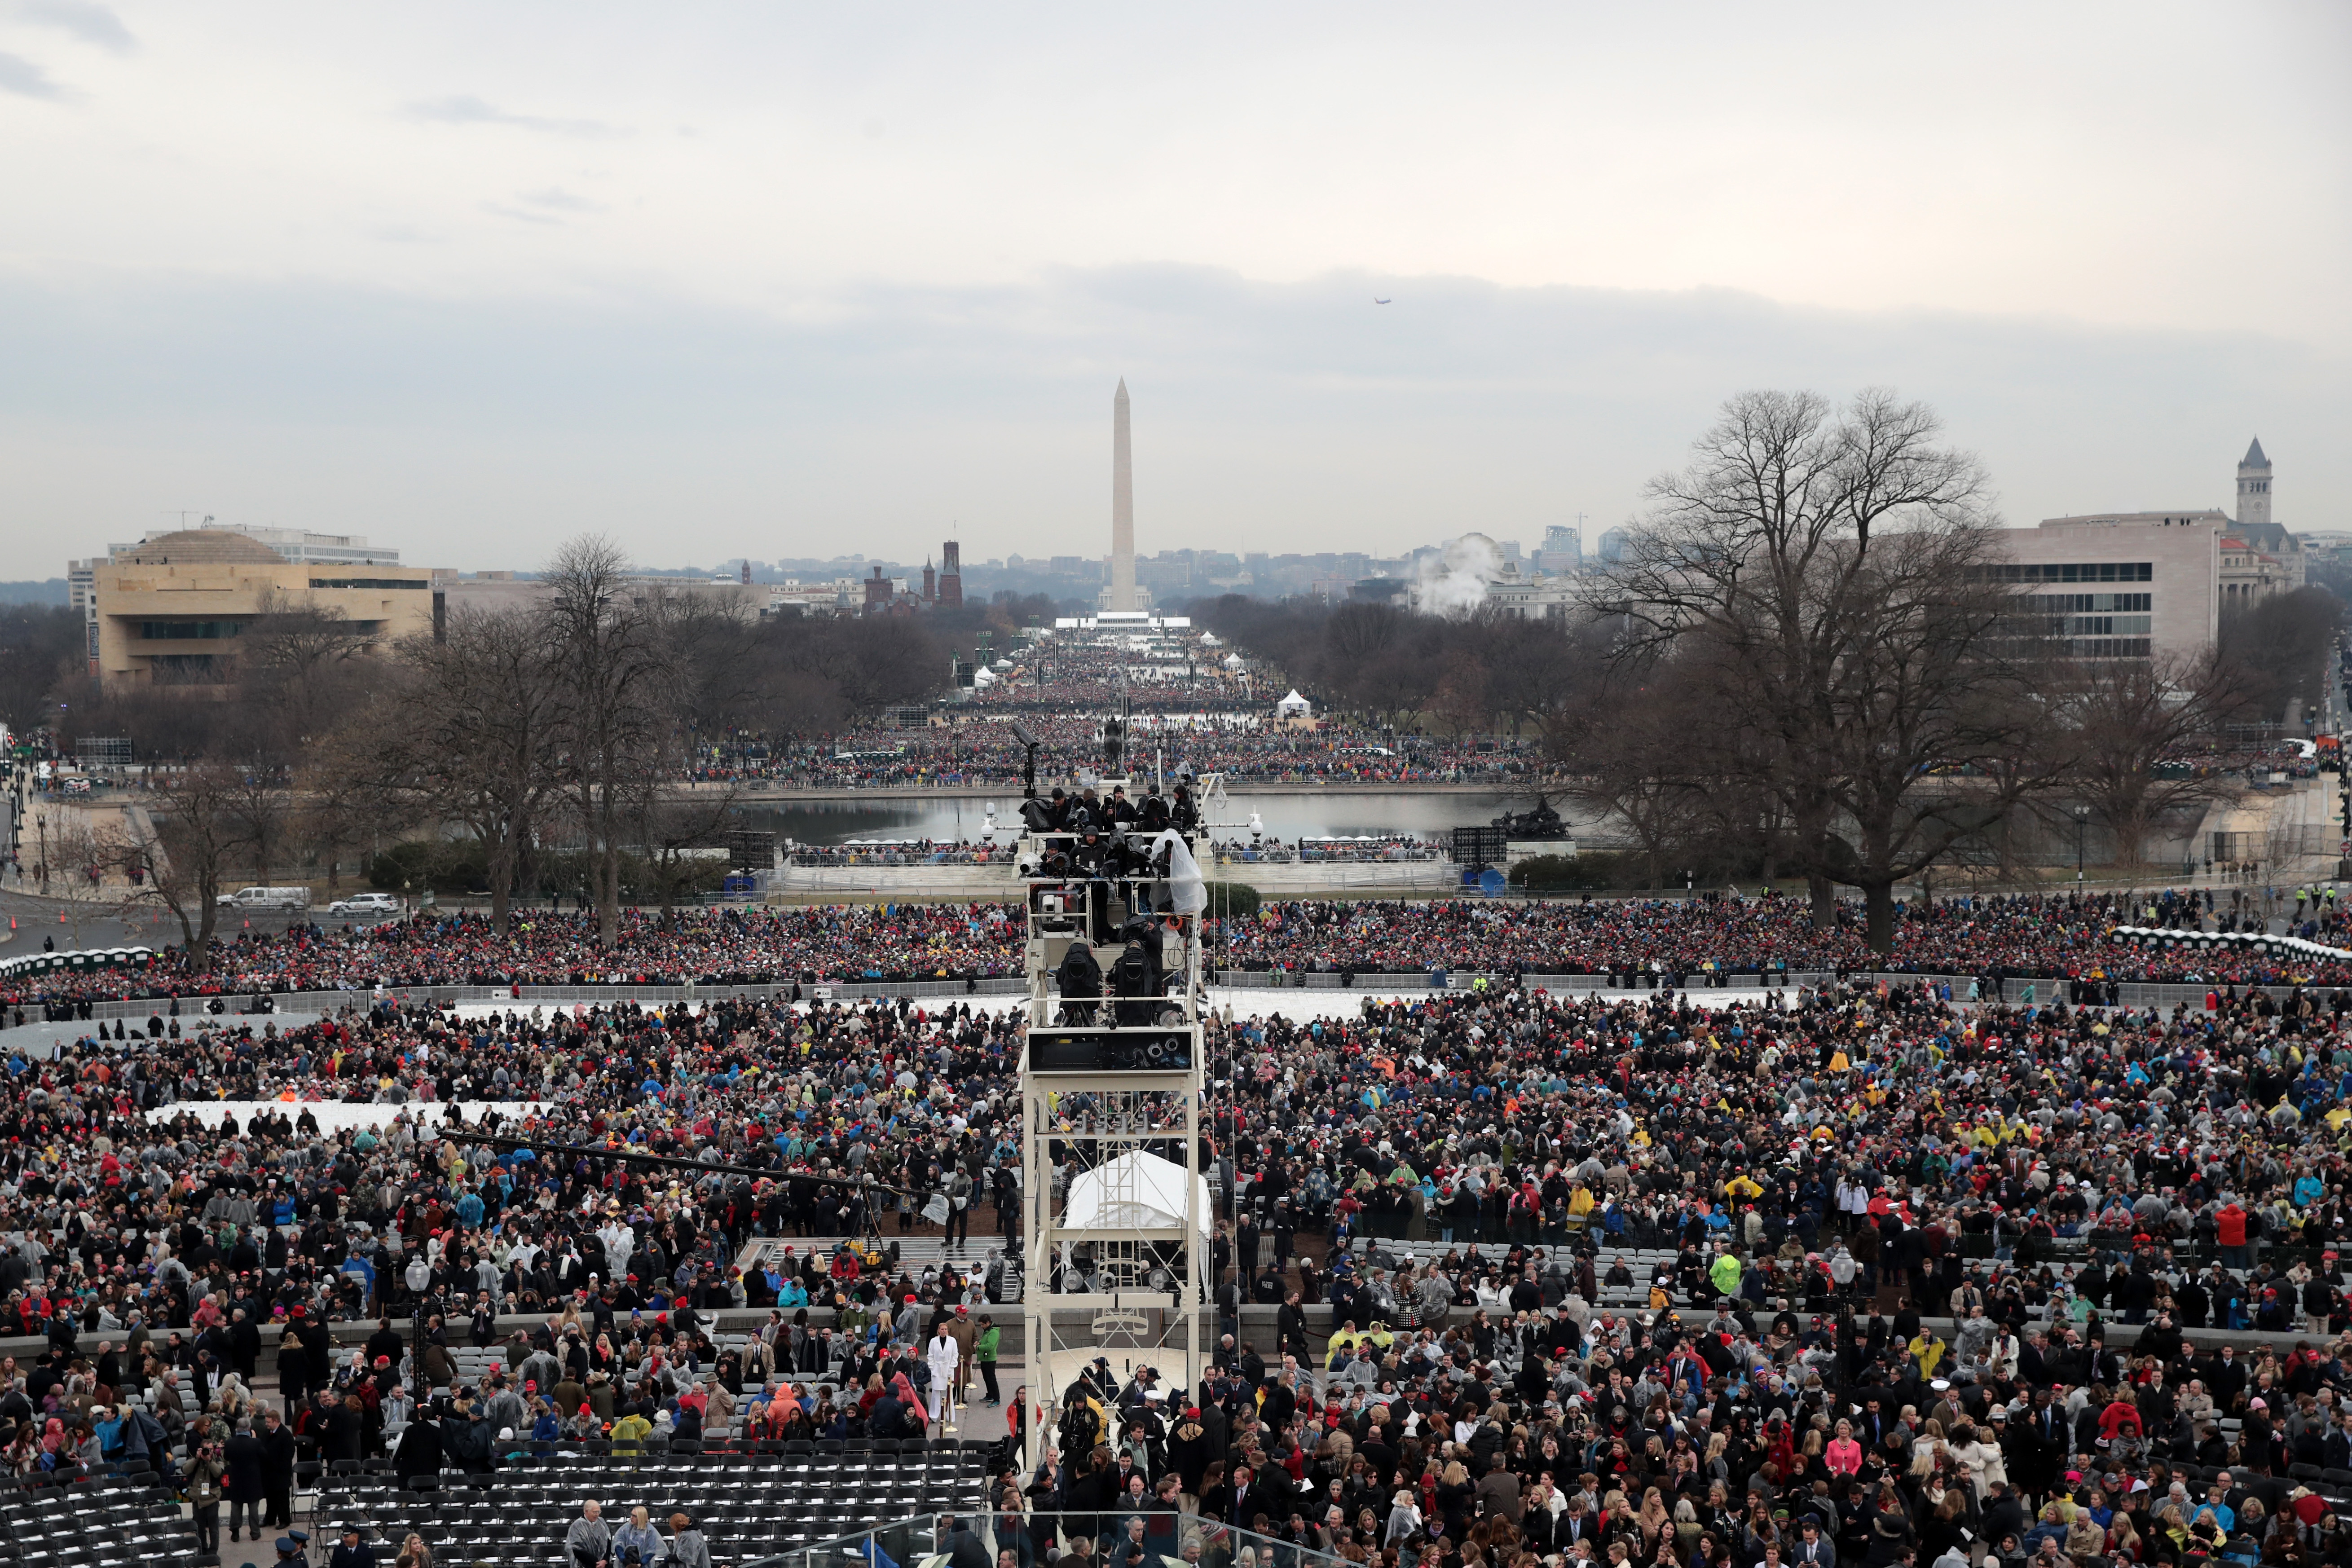 Trump Posts Tweet Of Inauguration Crowd Photo But The Date Is Wrong The Boston Globe,4 Bedroom Mobile Home For Sale Alberta